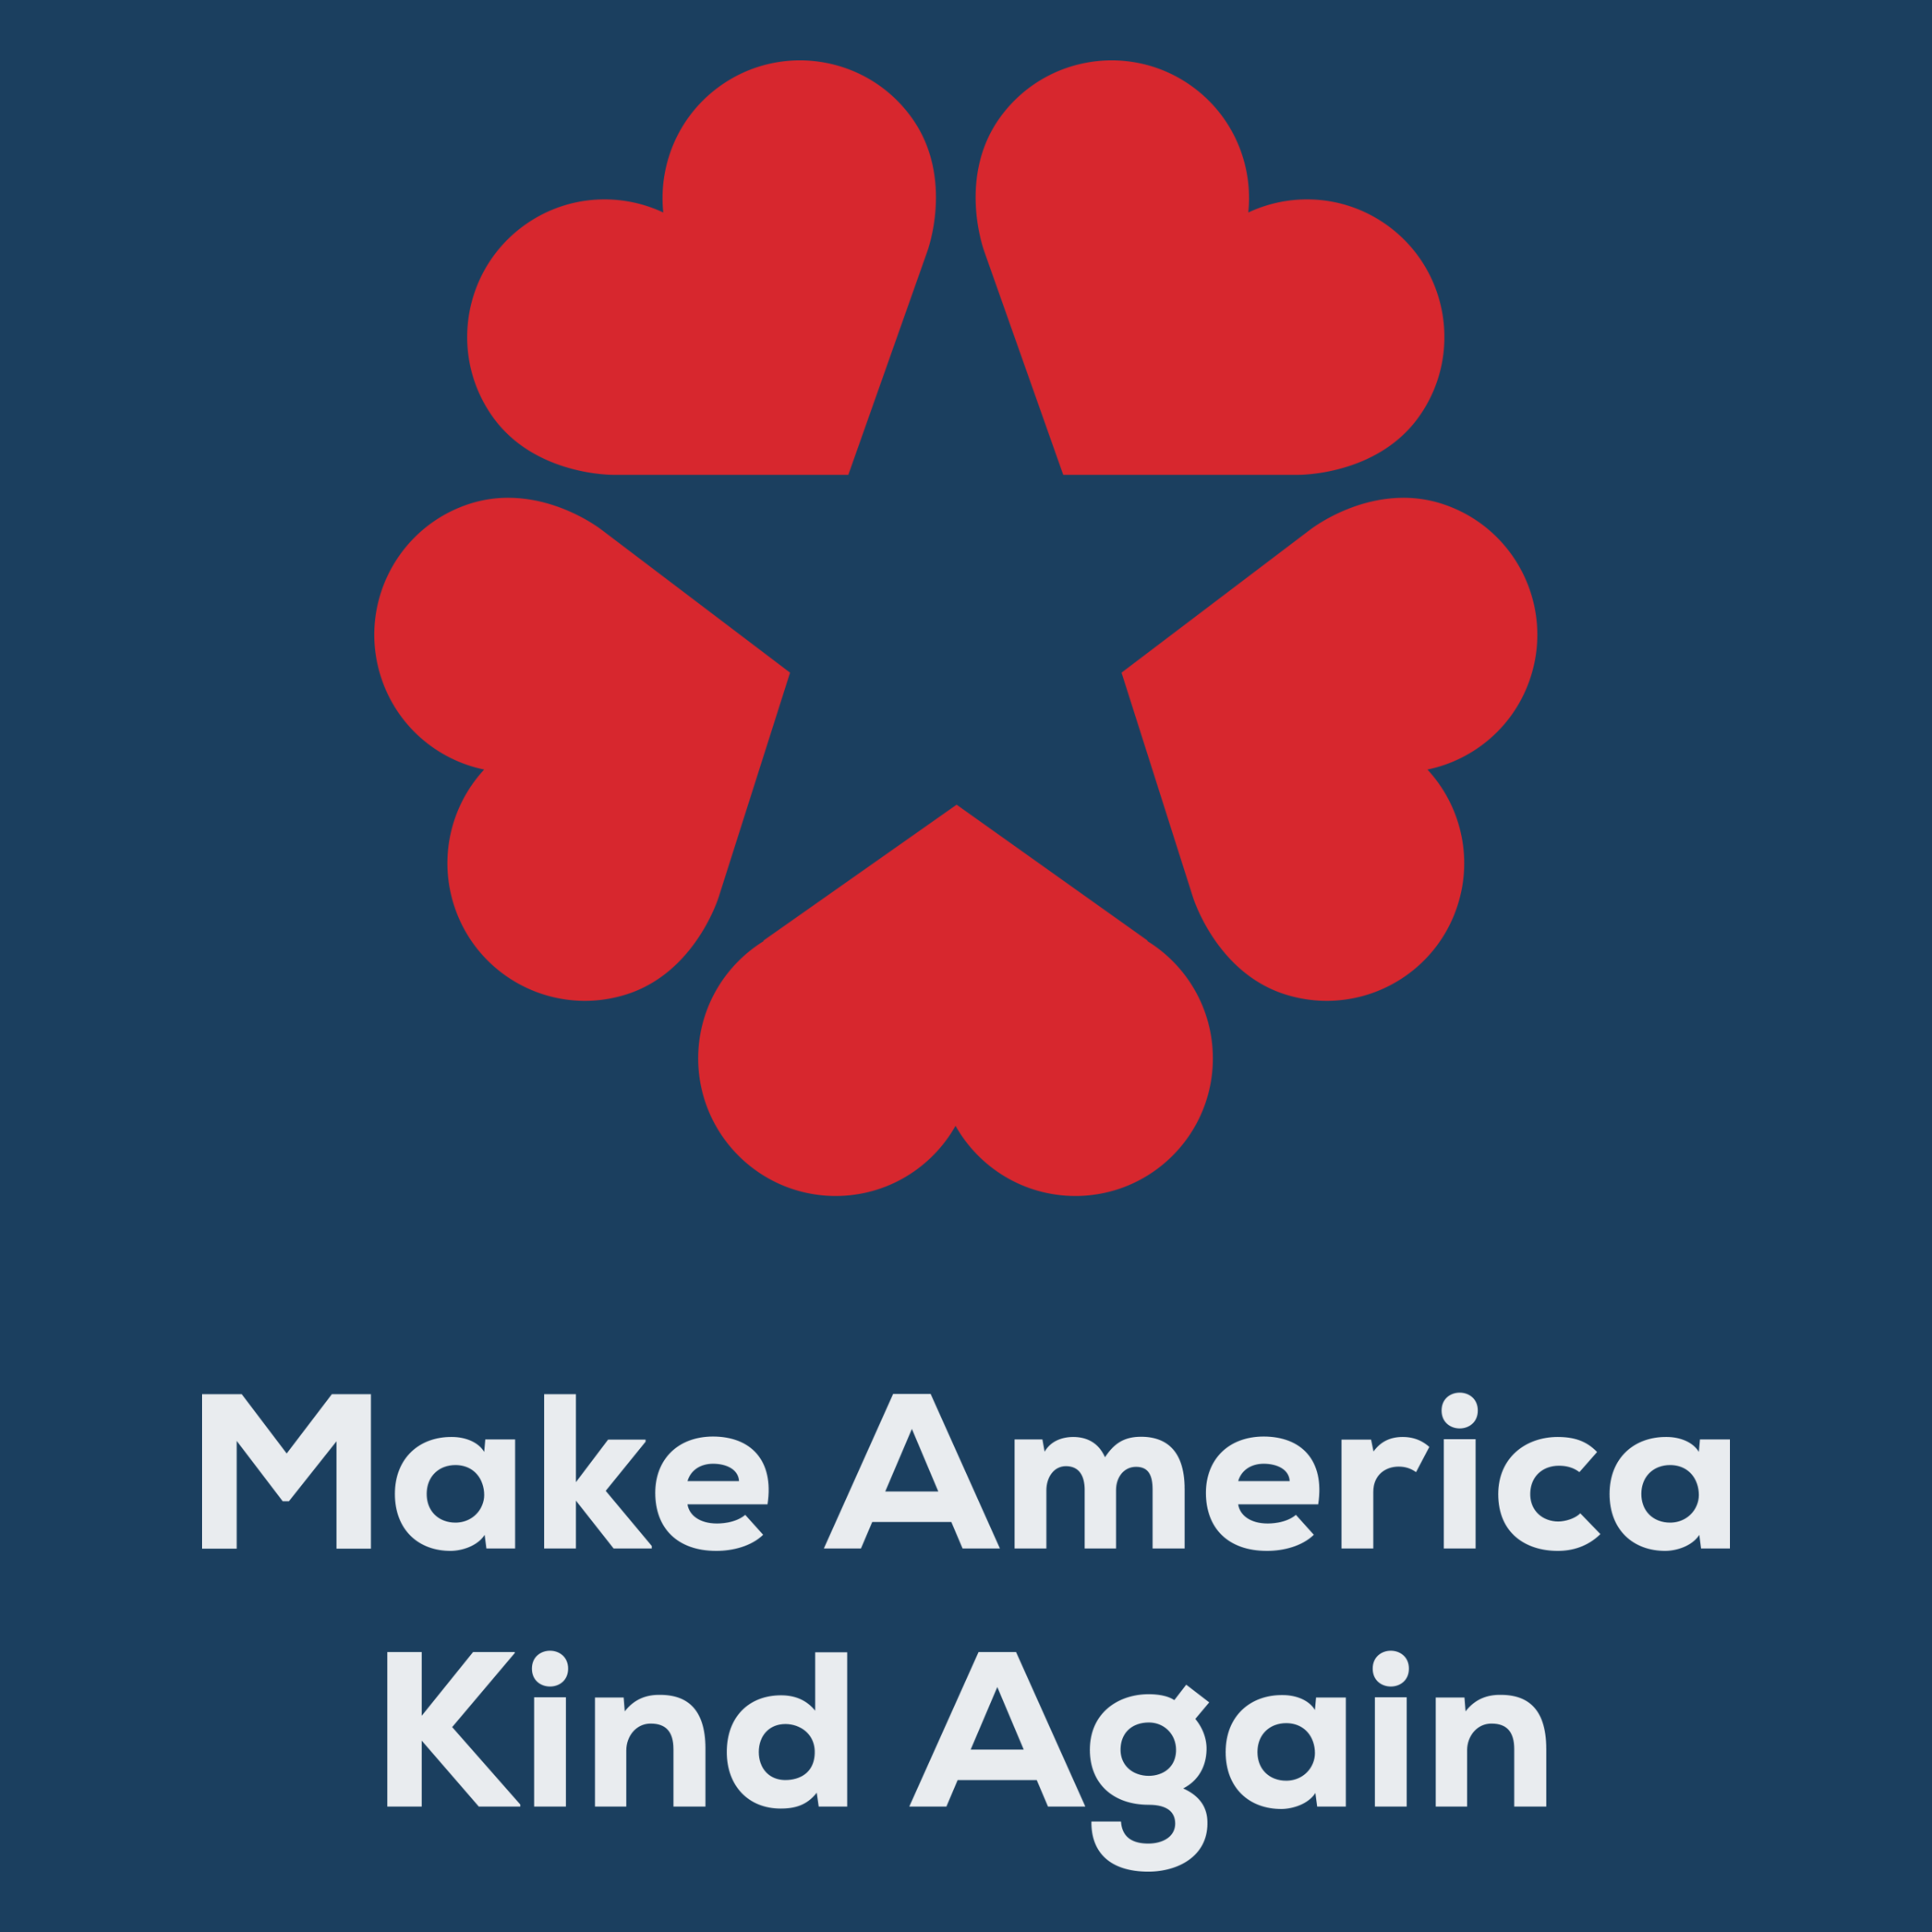 Make America Kind Again